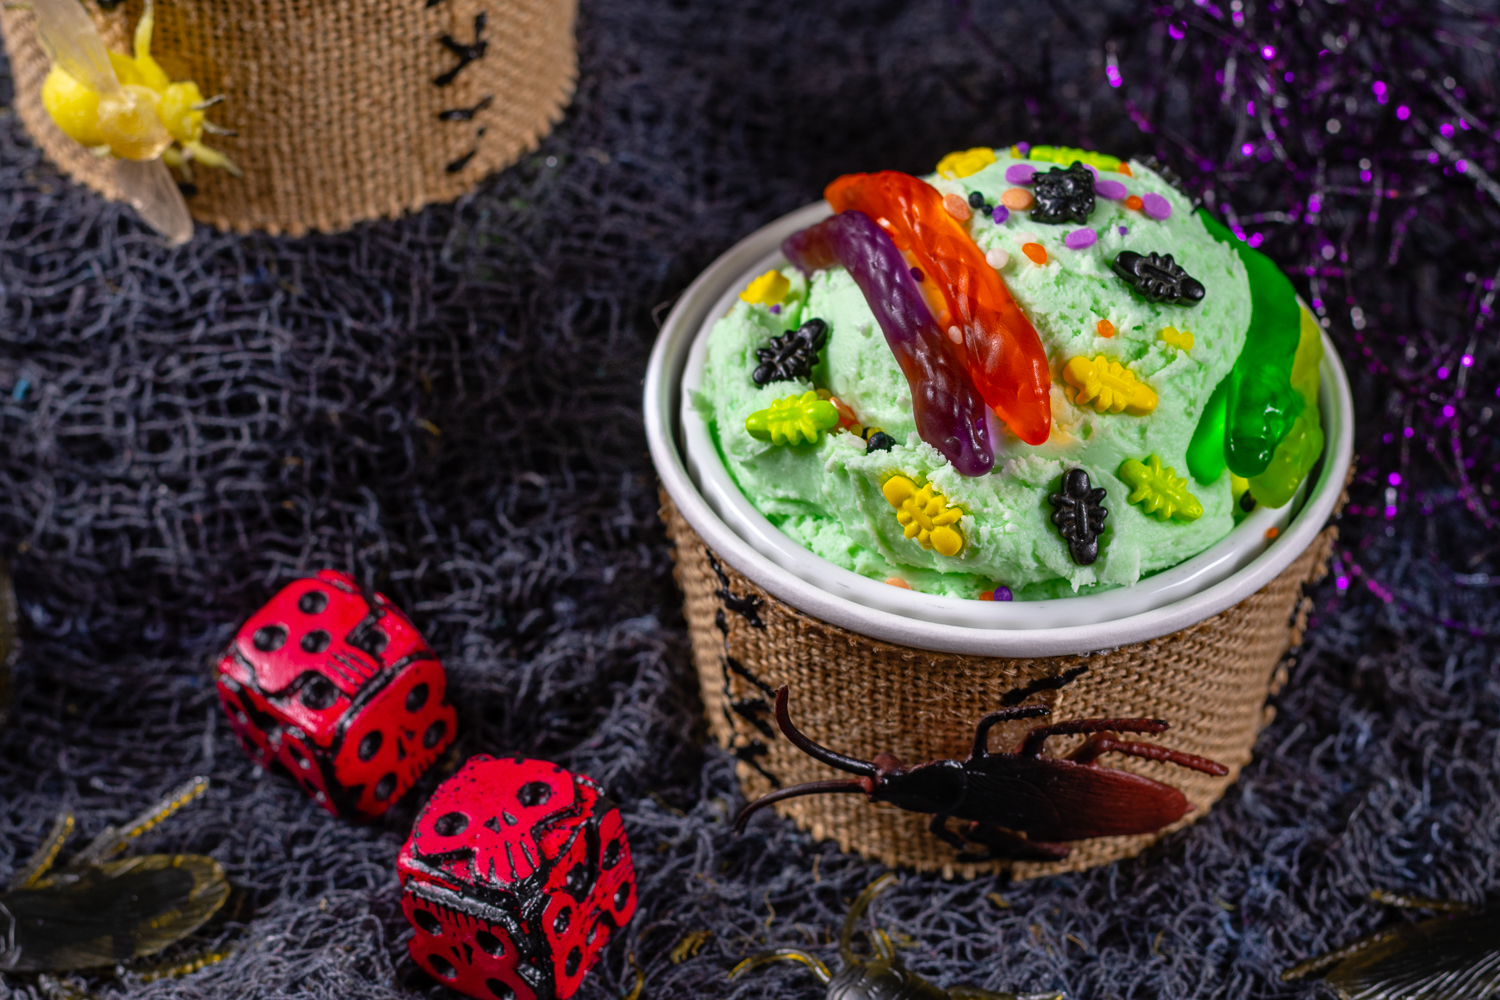 Nightmare Before Christmas Recipes | Halloween Recipes | Disney Recipes | The Geeks are celebrating the 25th anniversary of The Nightmare Before Christmas with a cute craft and ice cream sundae DIY called Oogie Boogie Ice Cream Sundae! [sponsored] 2geekswhoeat.com